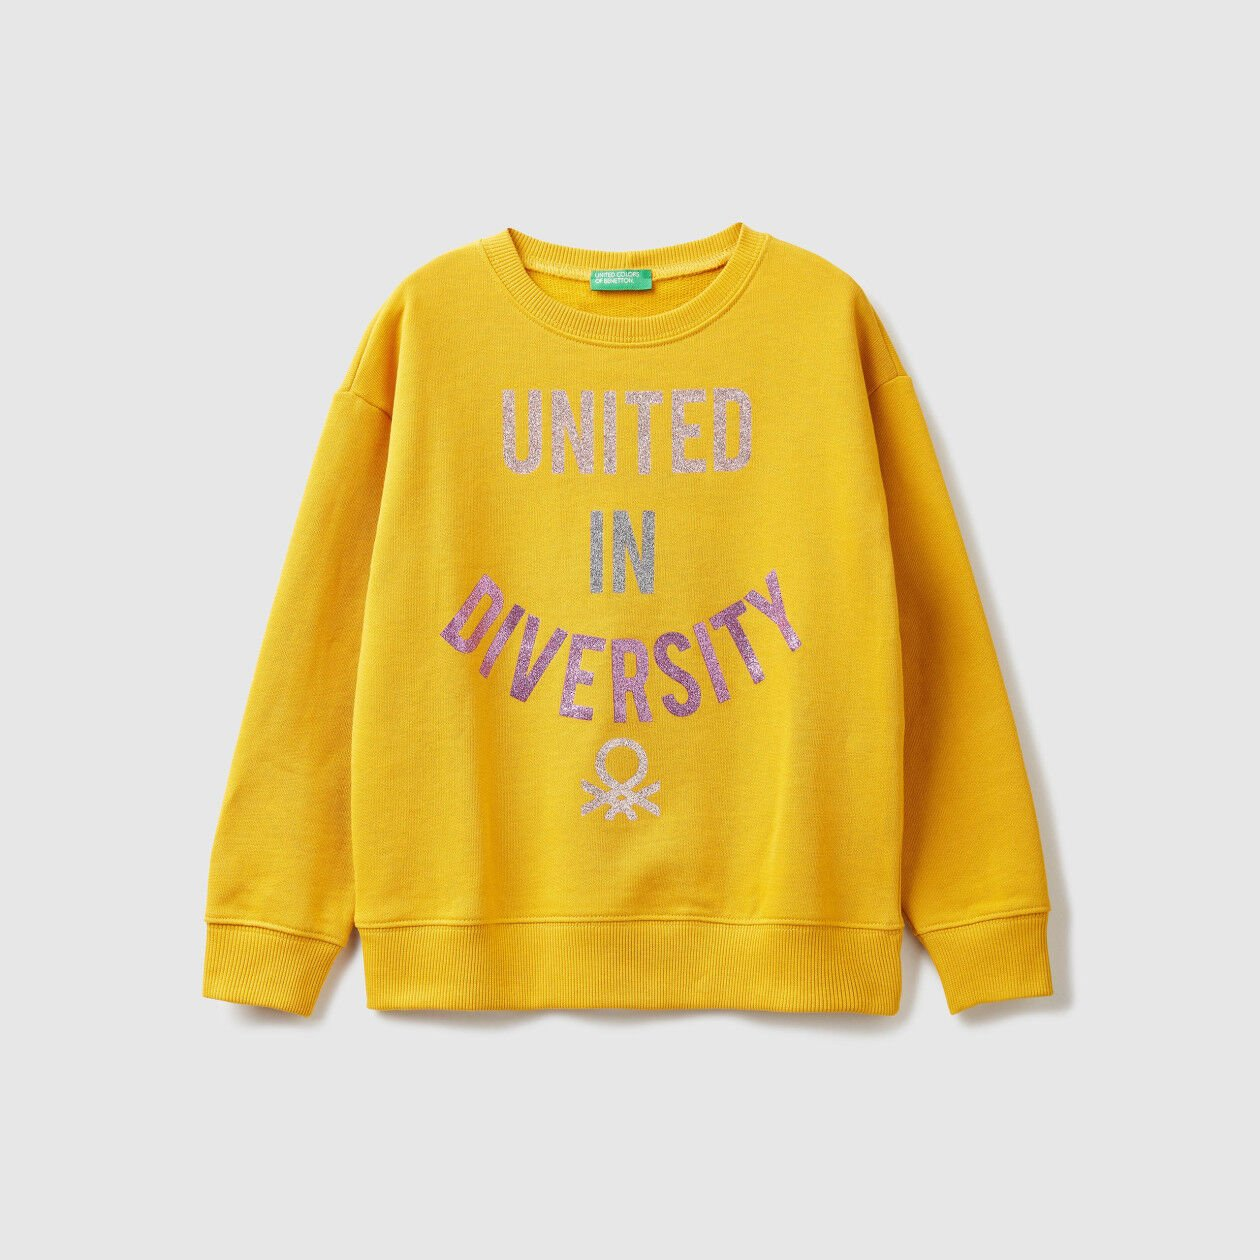 Crew neck sweatshirt with glittery print